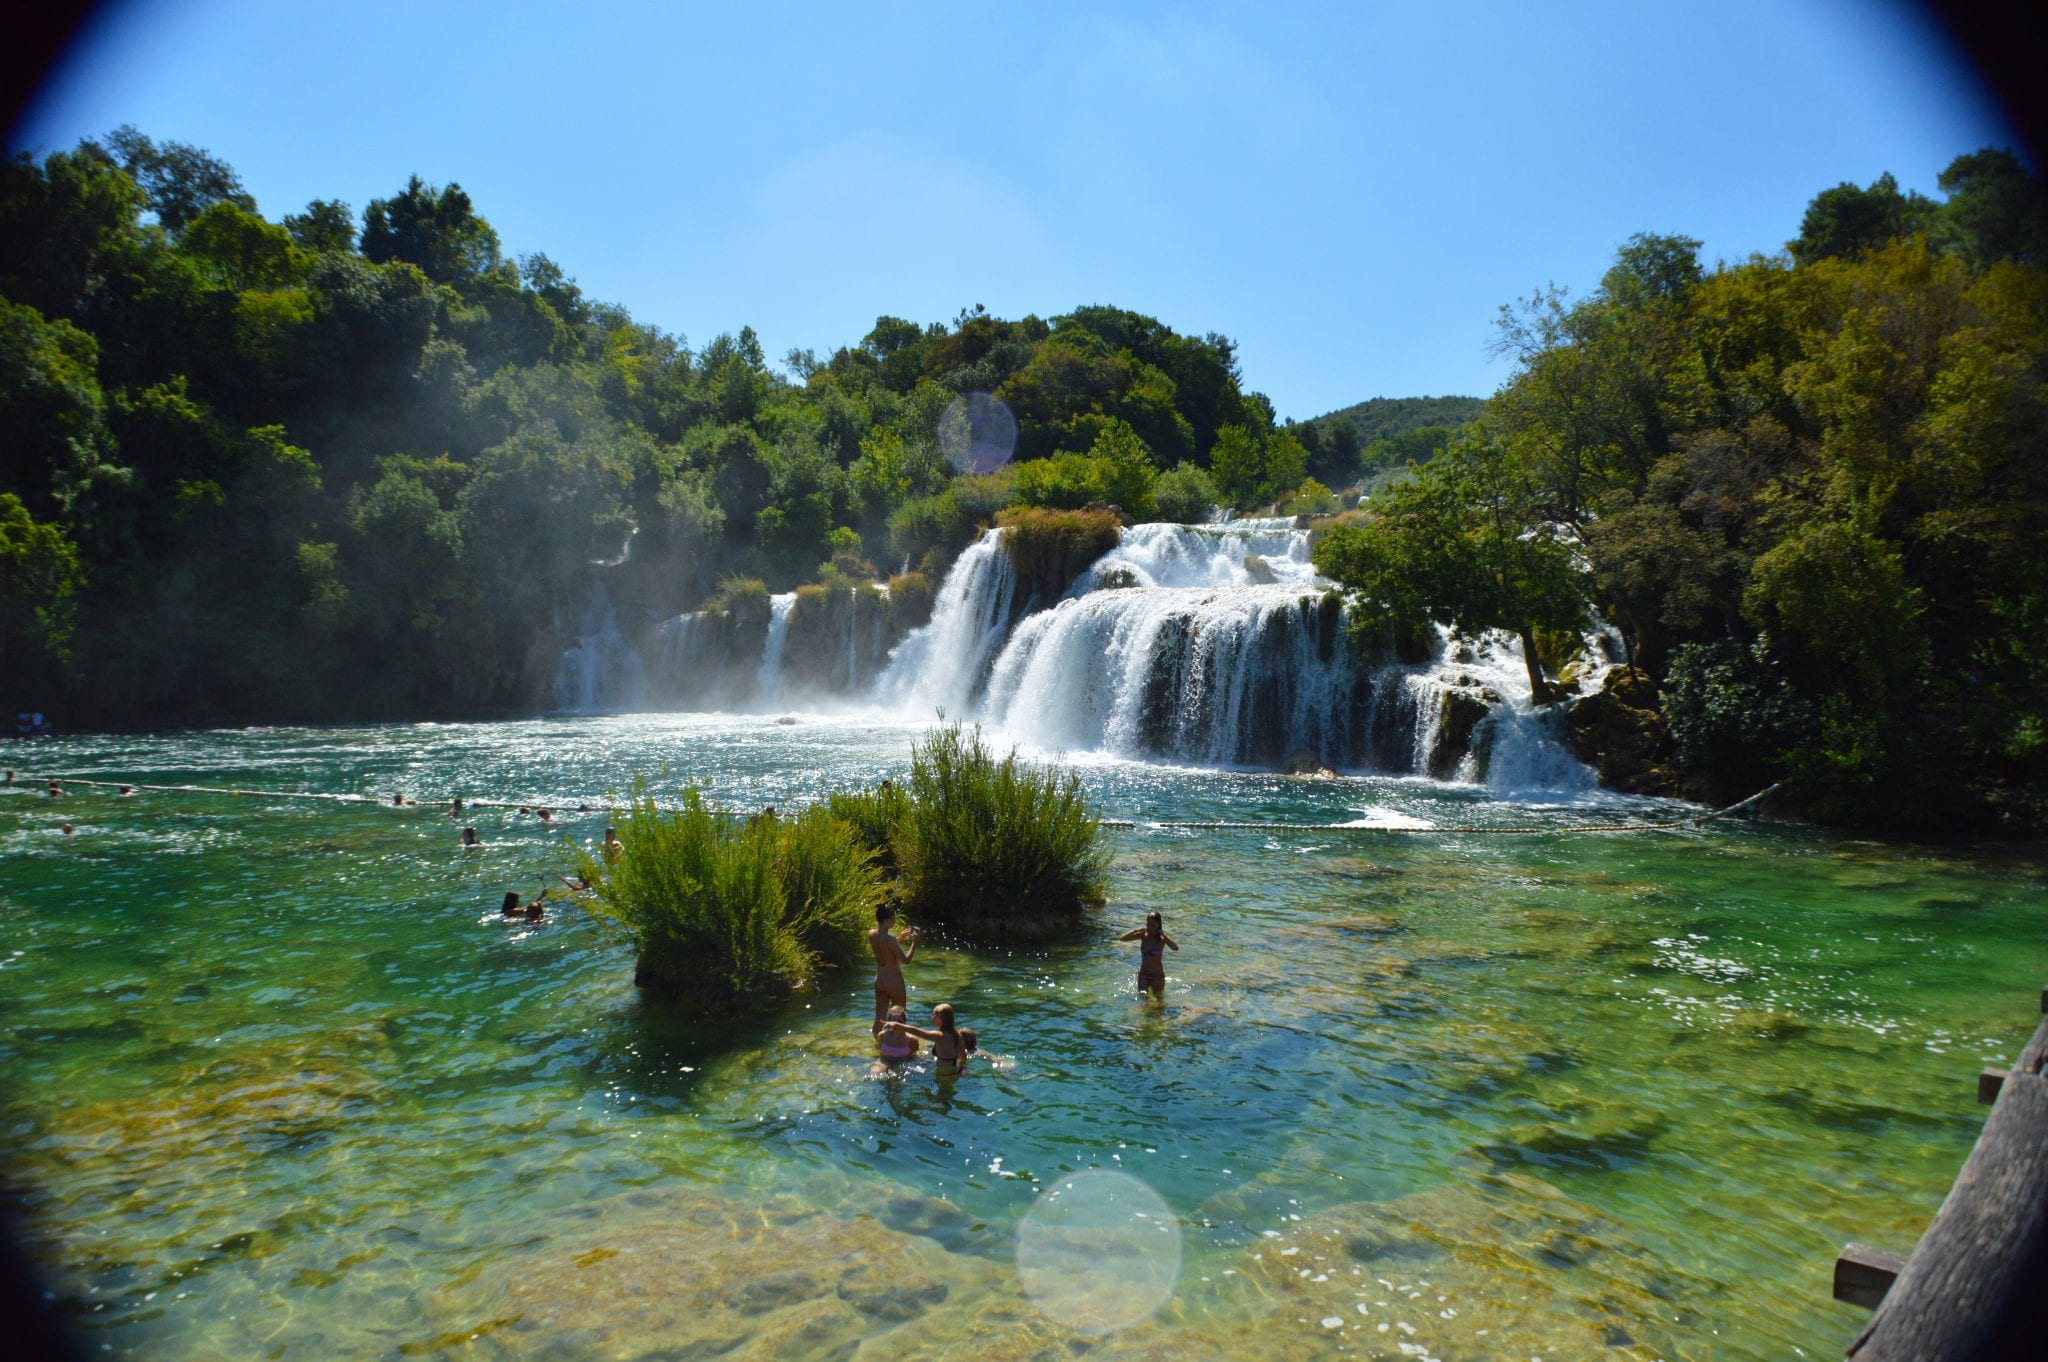 Krka National Park – Prachtige Watervallen in Kroatië